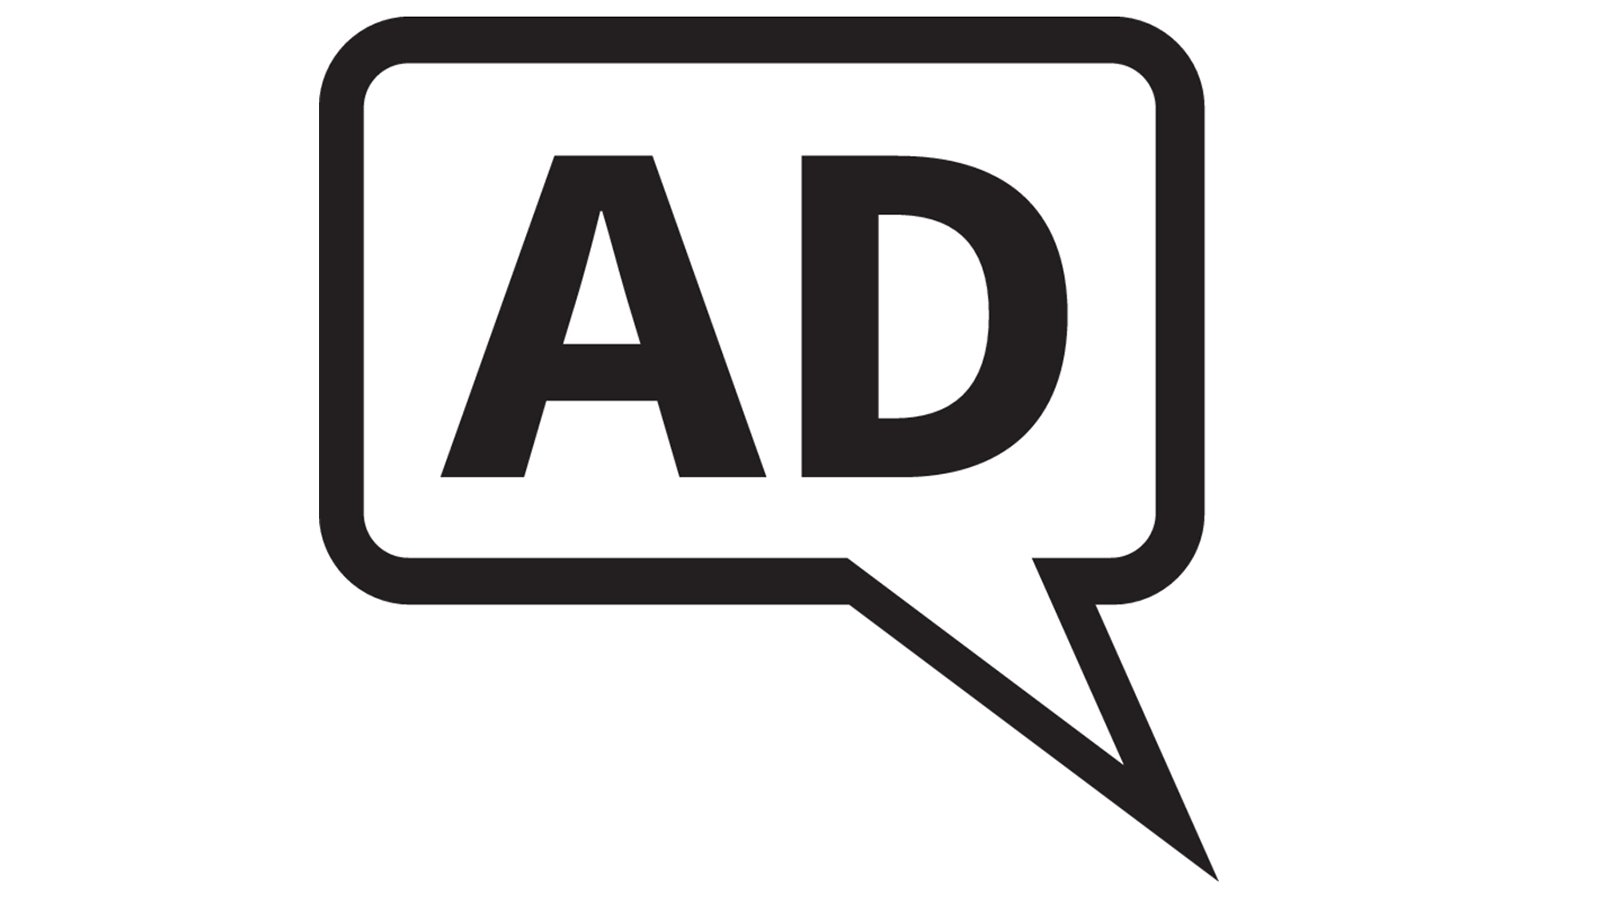 Black speech bubble with the letters 'AD' inside it.